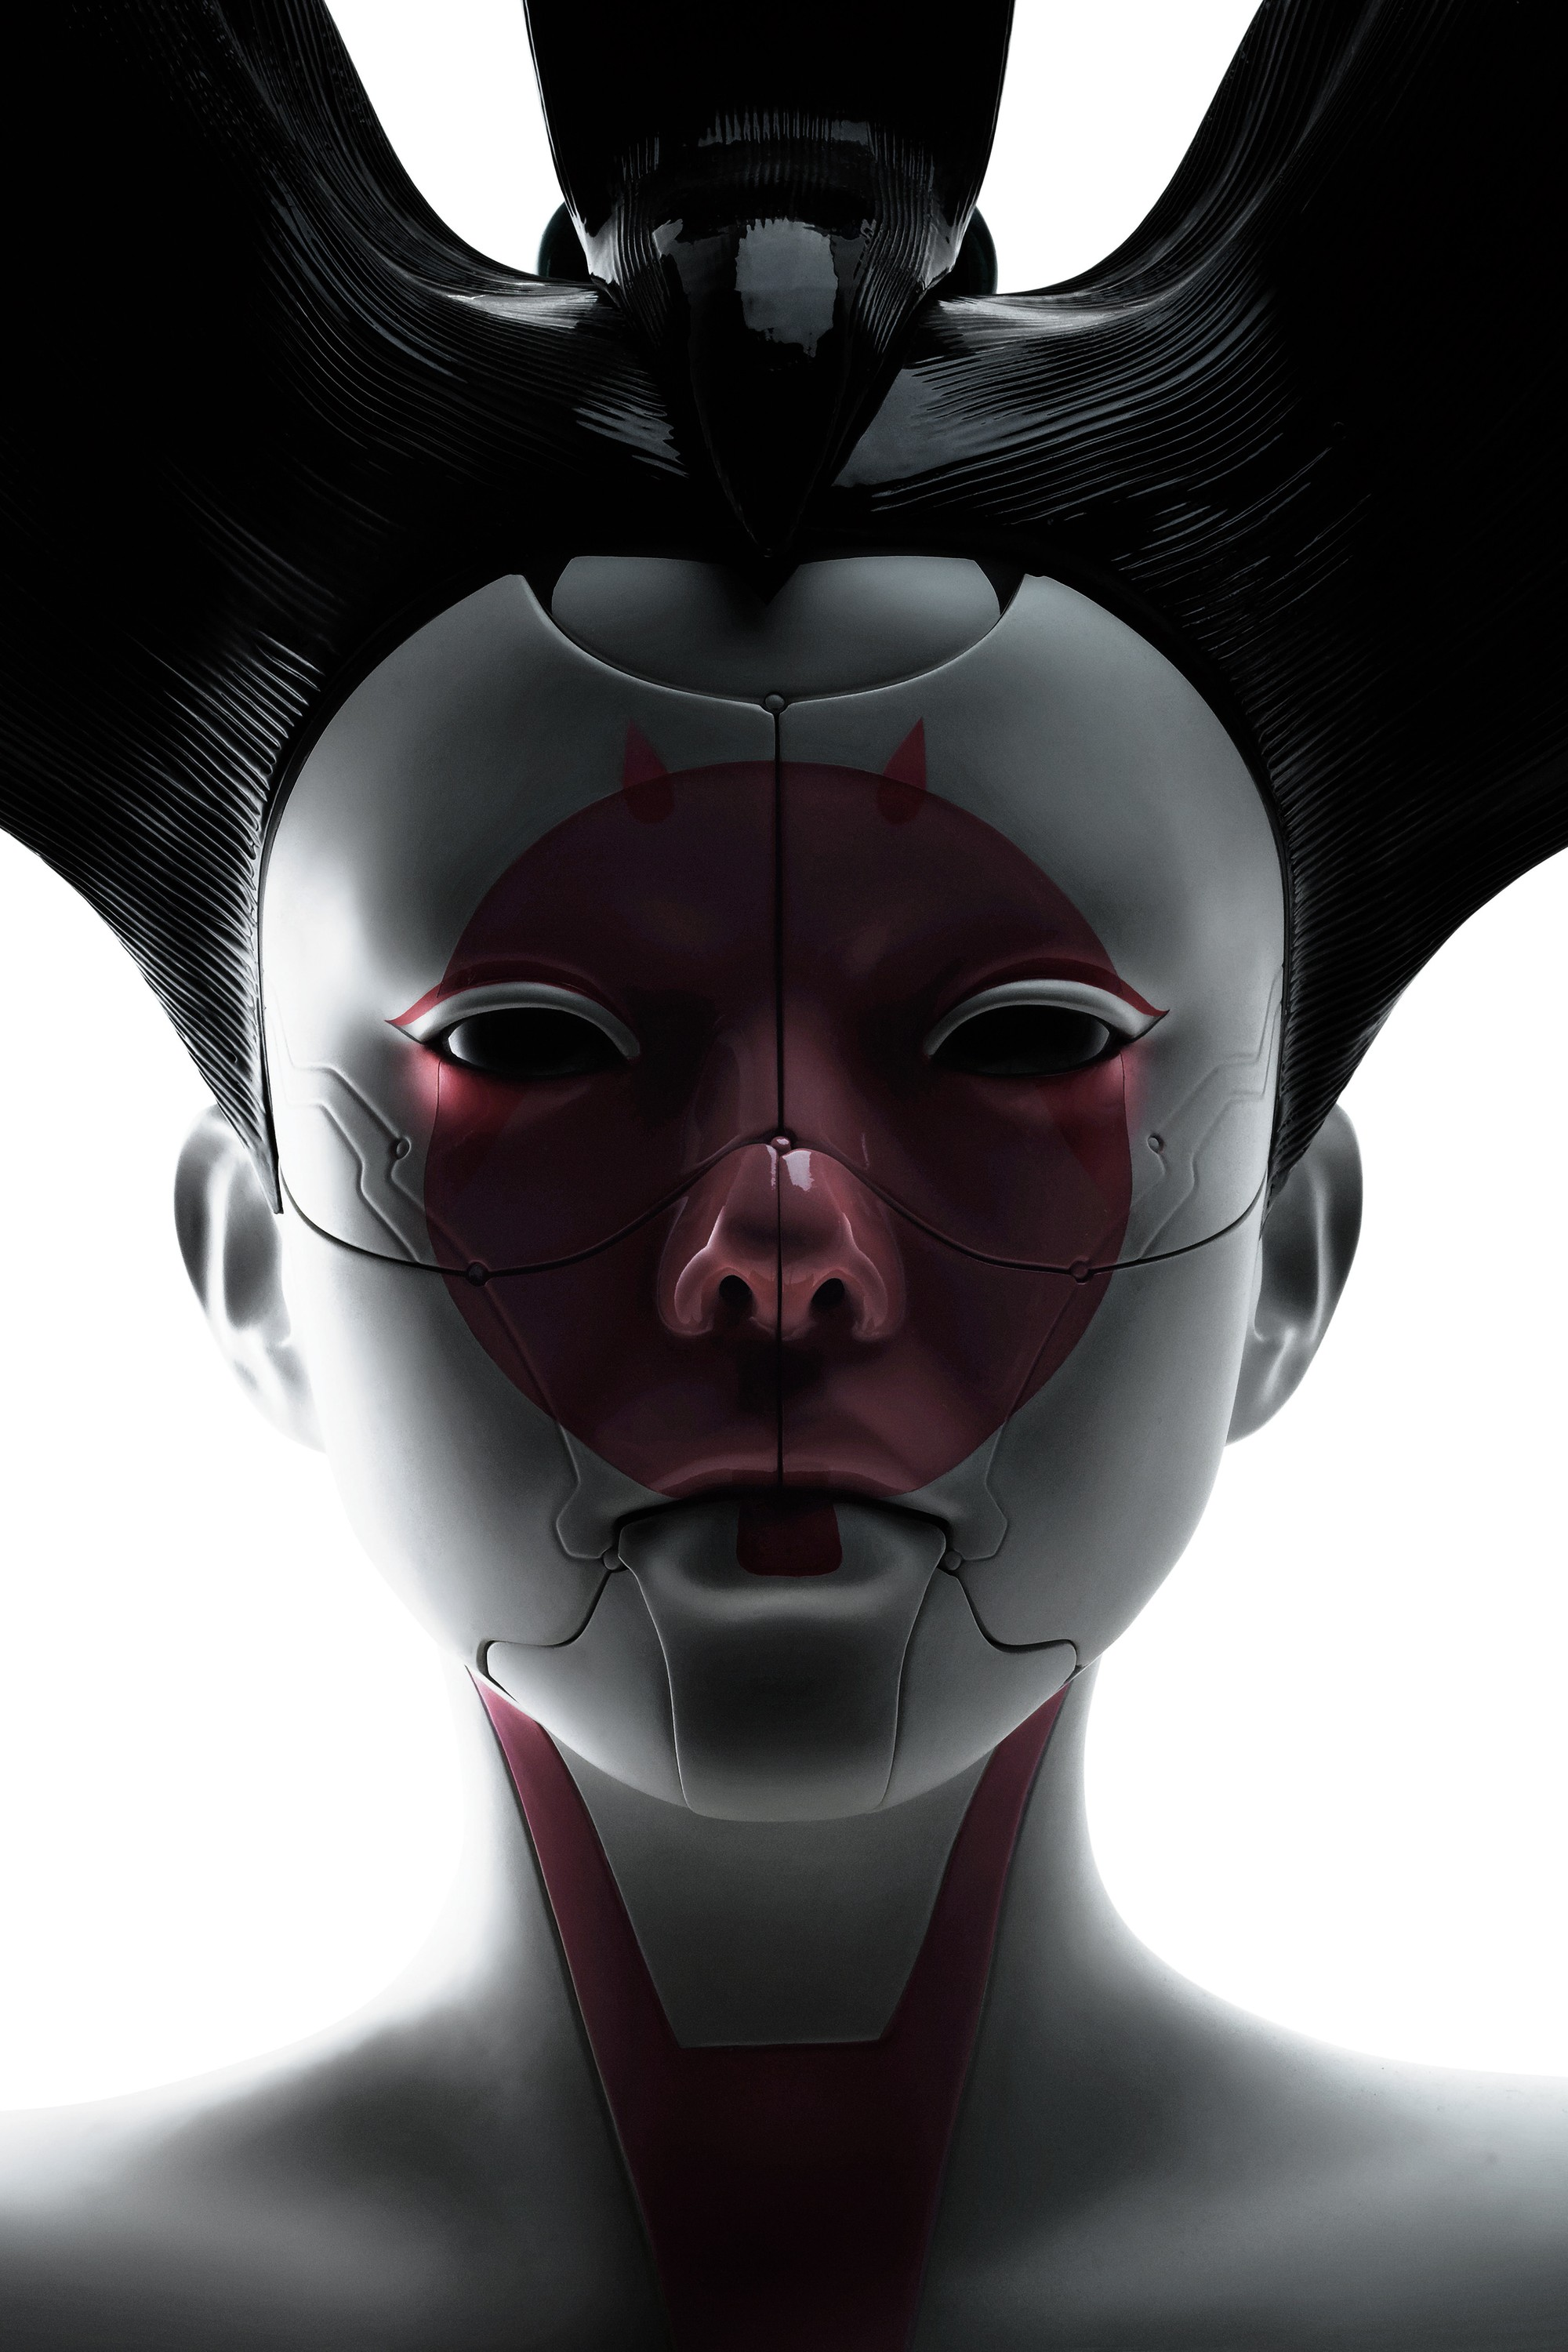 Ghost in the Shell geisha 1 2020 Year In Review